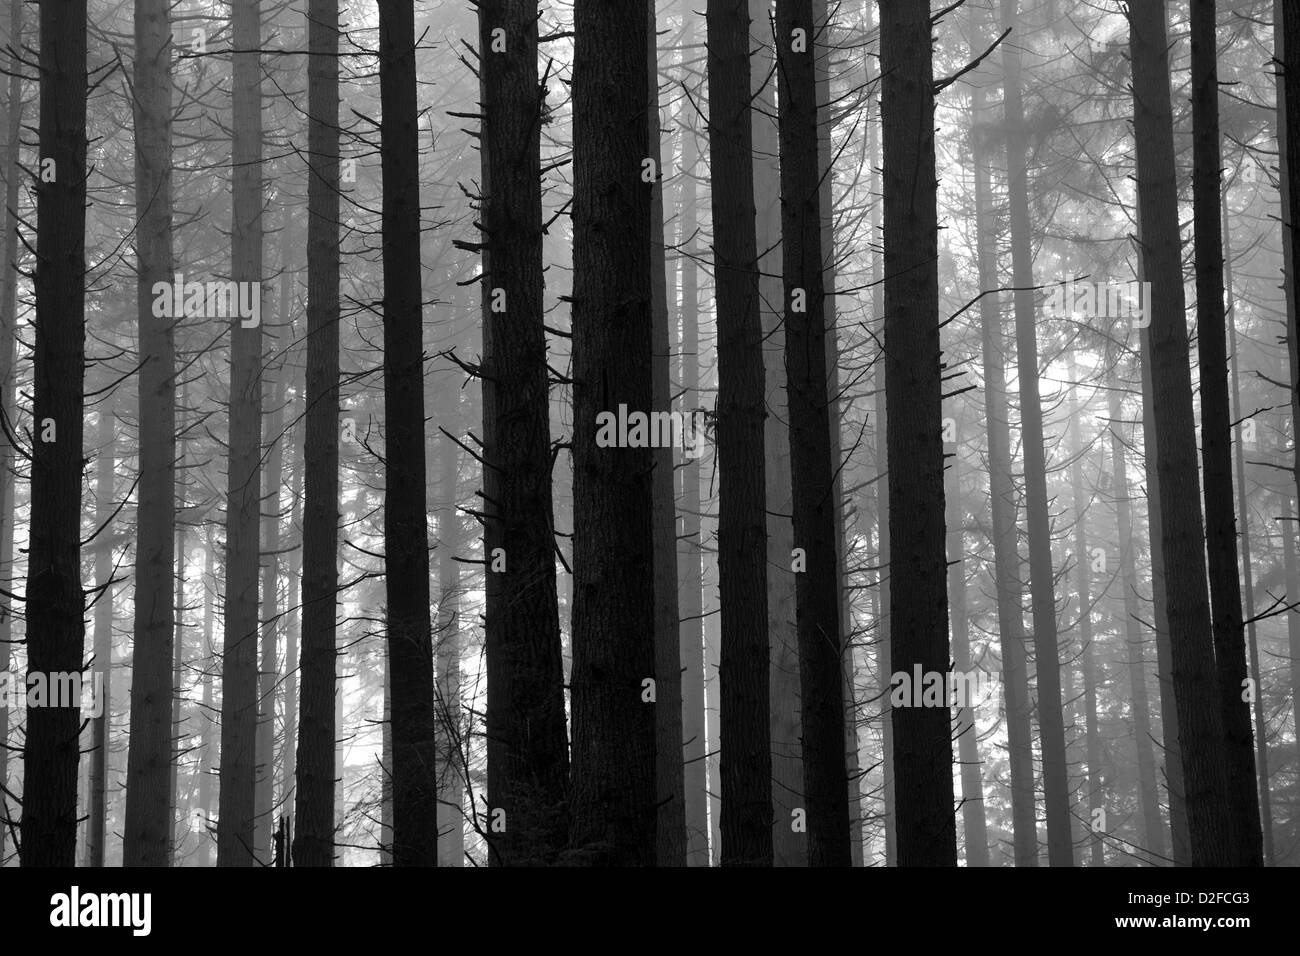 Black and White image of trees in a rain forest on a foggy morning, Canada - Stock Image